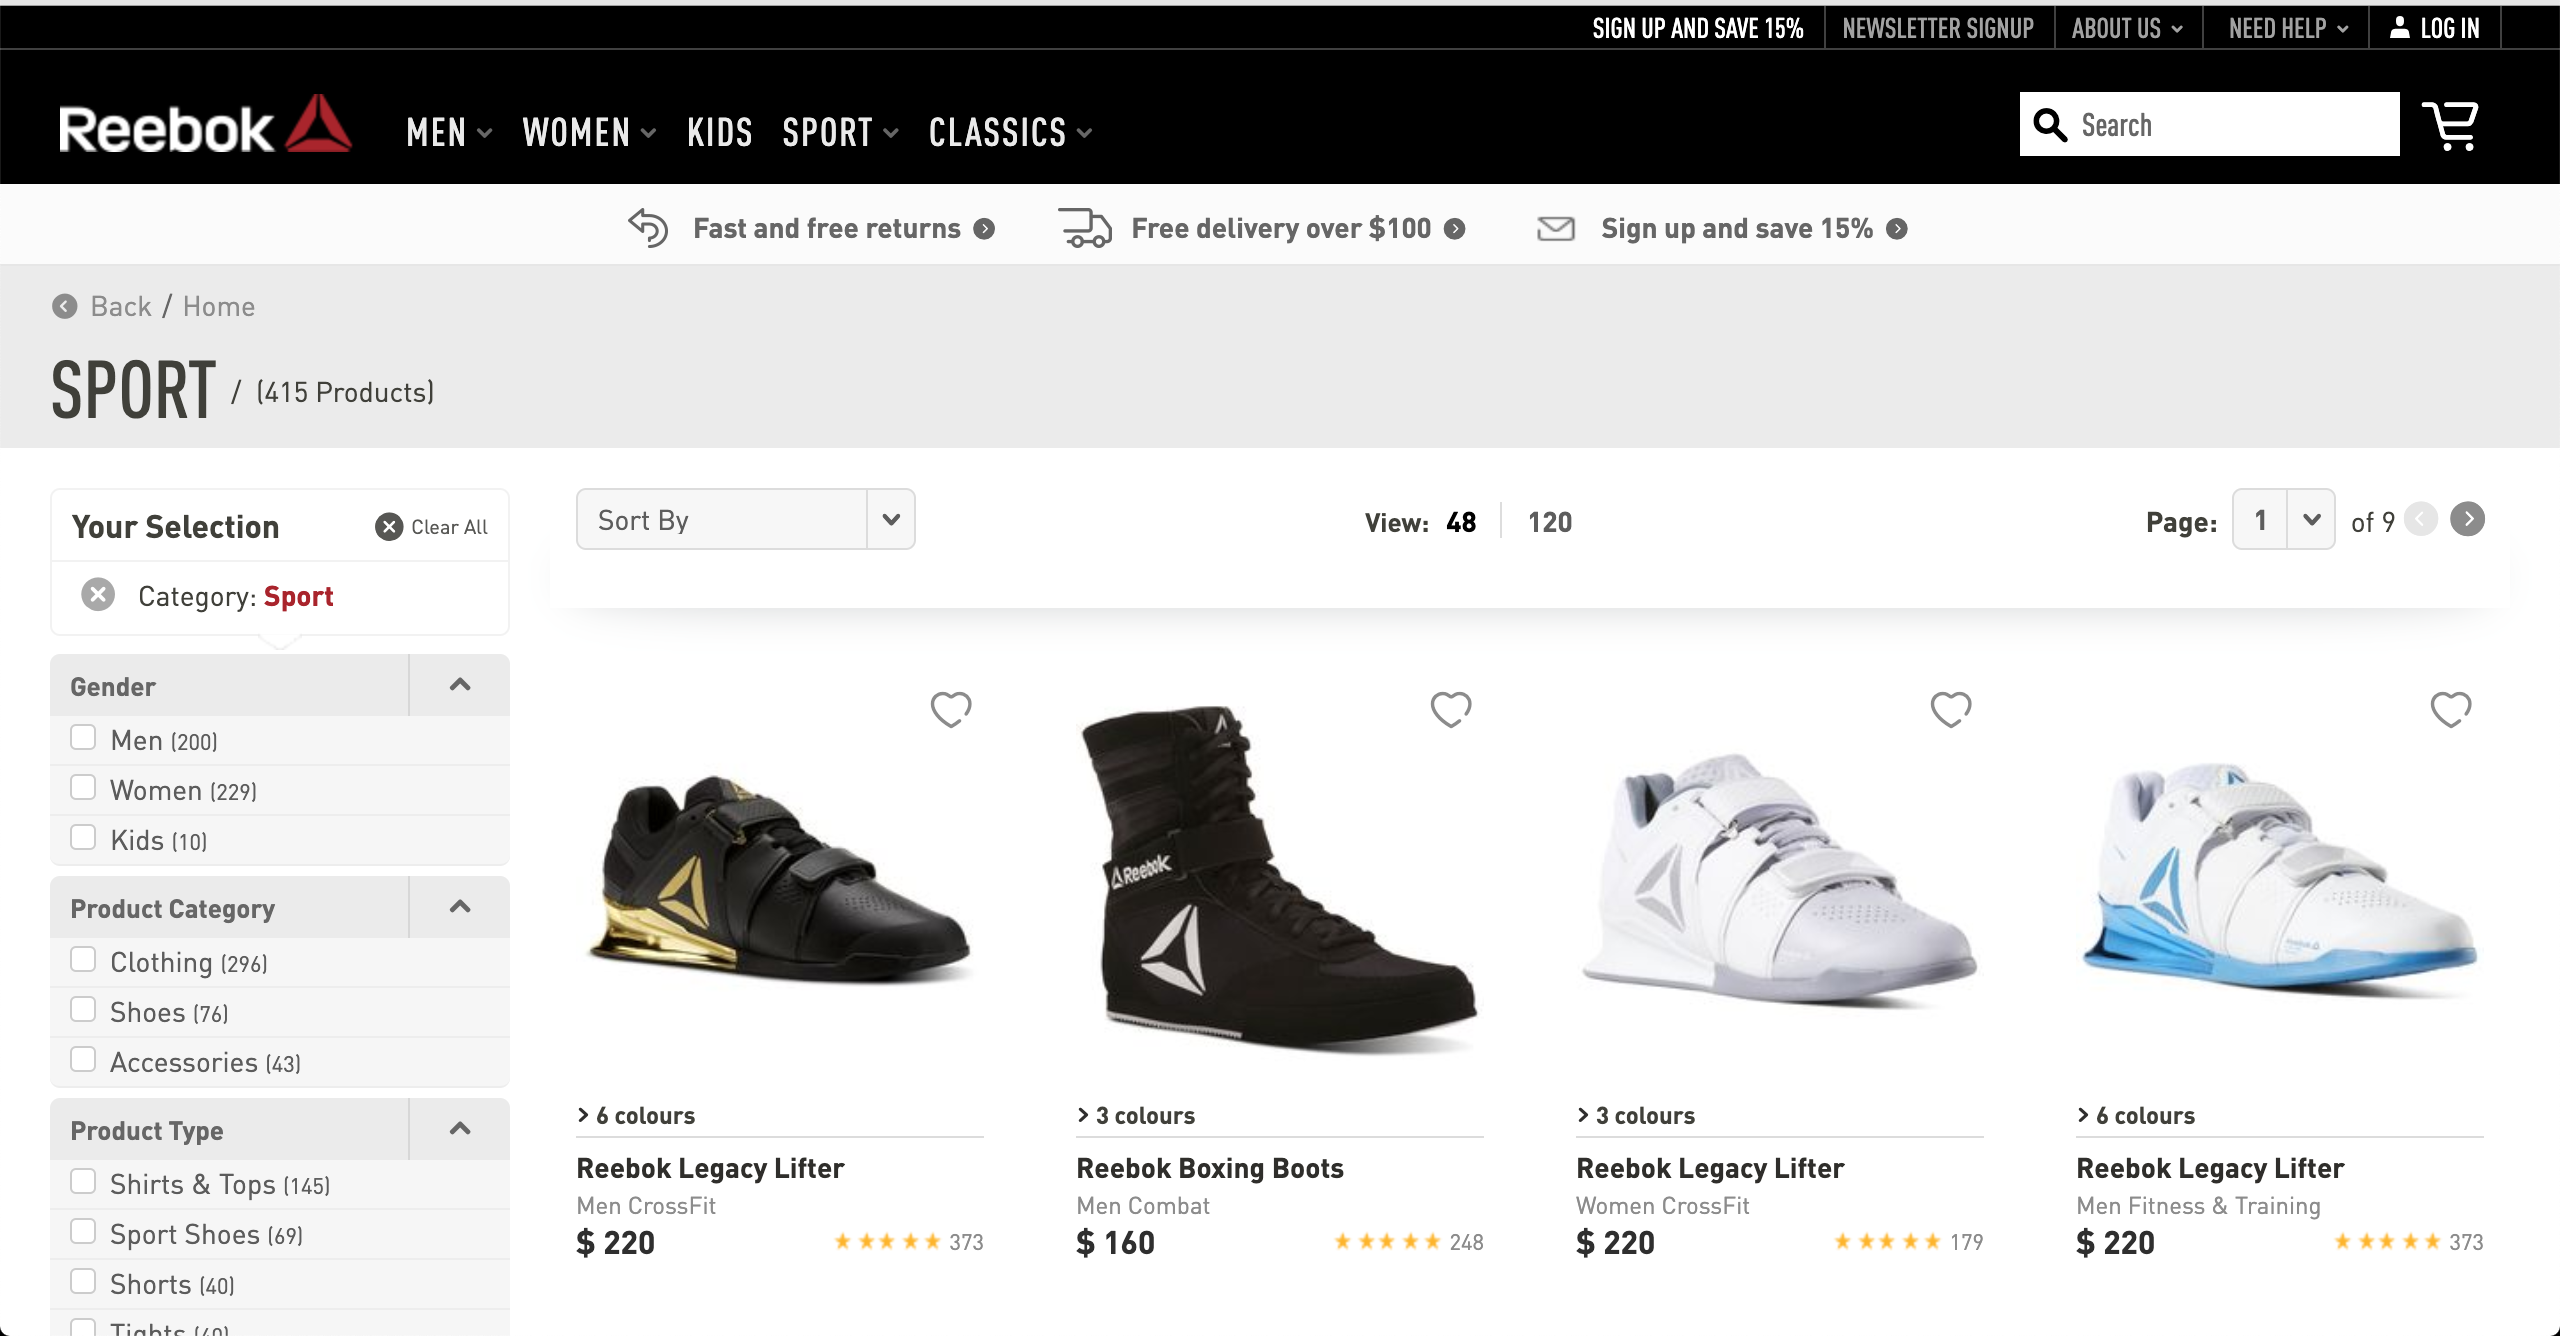 Reebok Sports product page